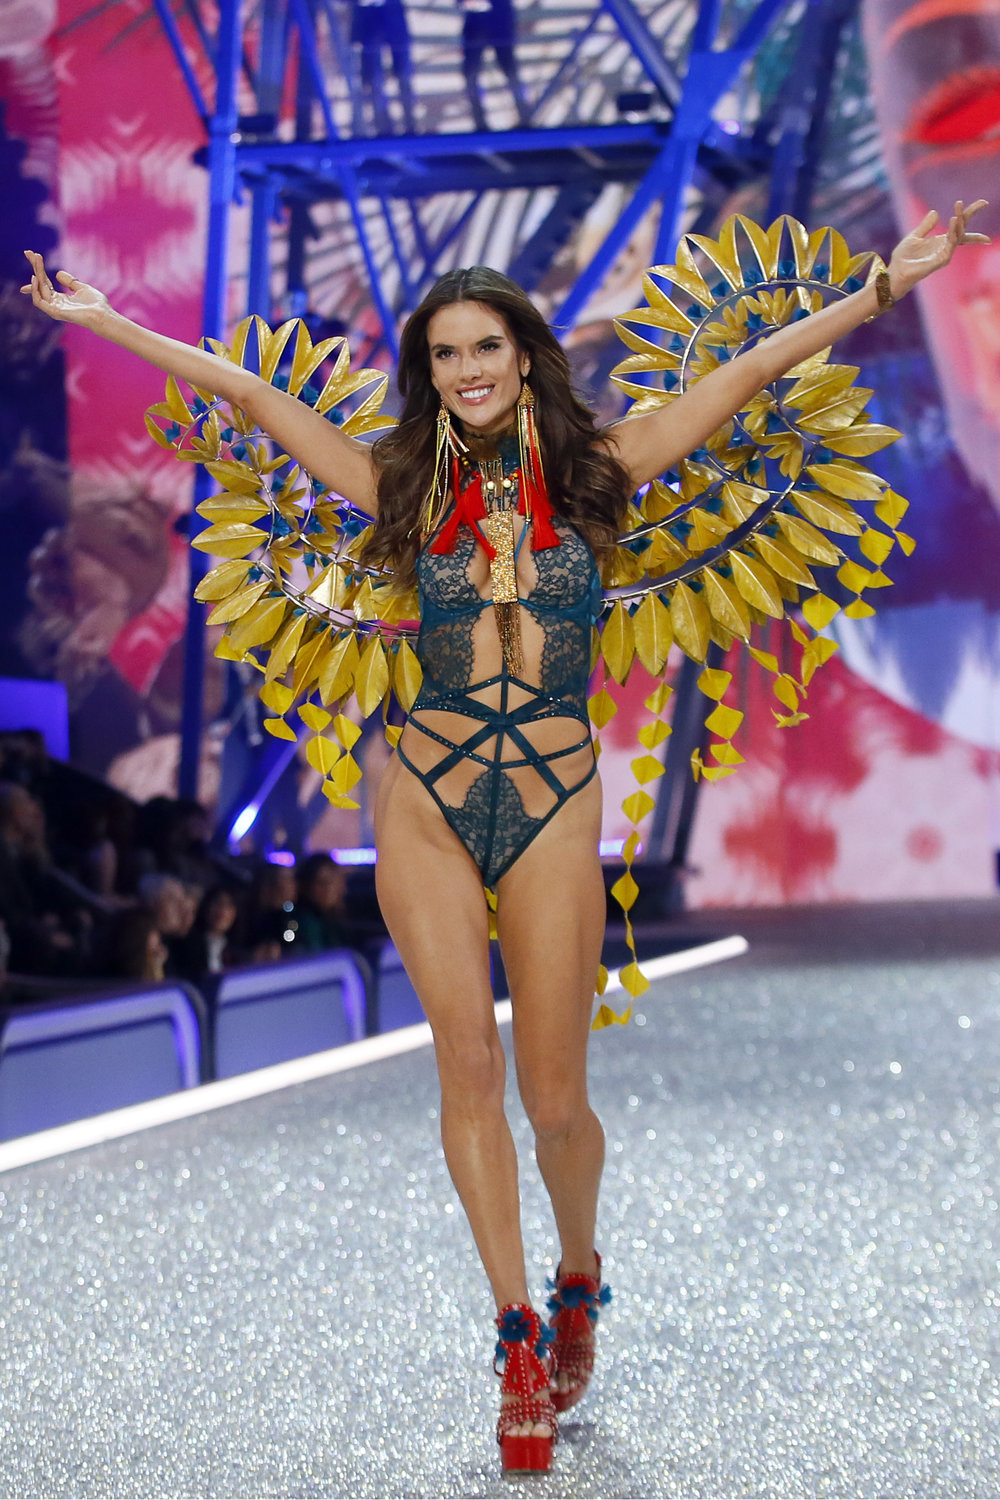 Model Alessandra Ambrosio displays a creation during the Victoria's Secret Fashion Show inside the Grand Palais, in Paris, Wednesday, Nov. 30, 2016. (AP Photo)